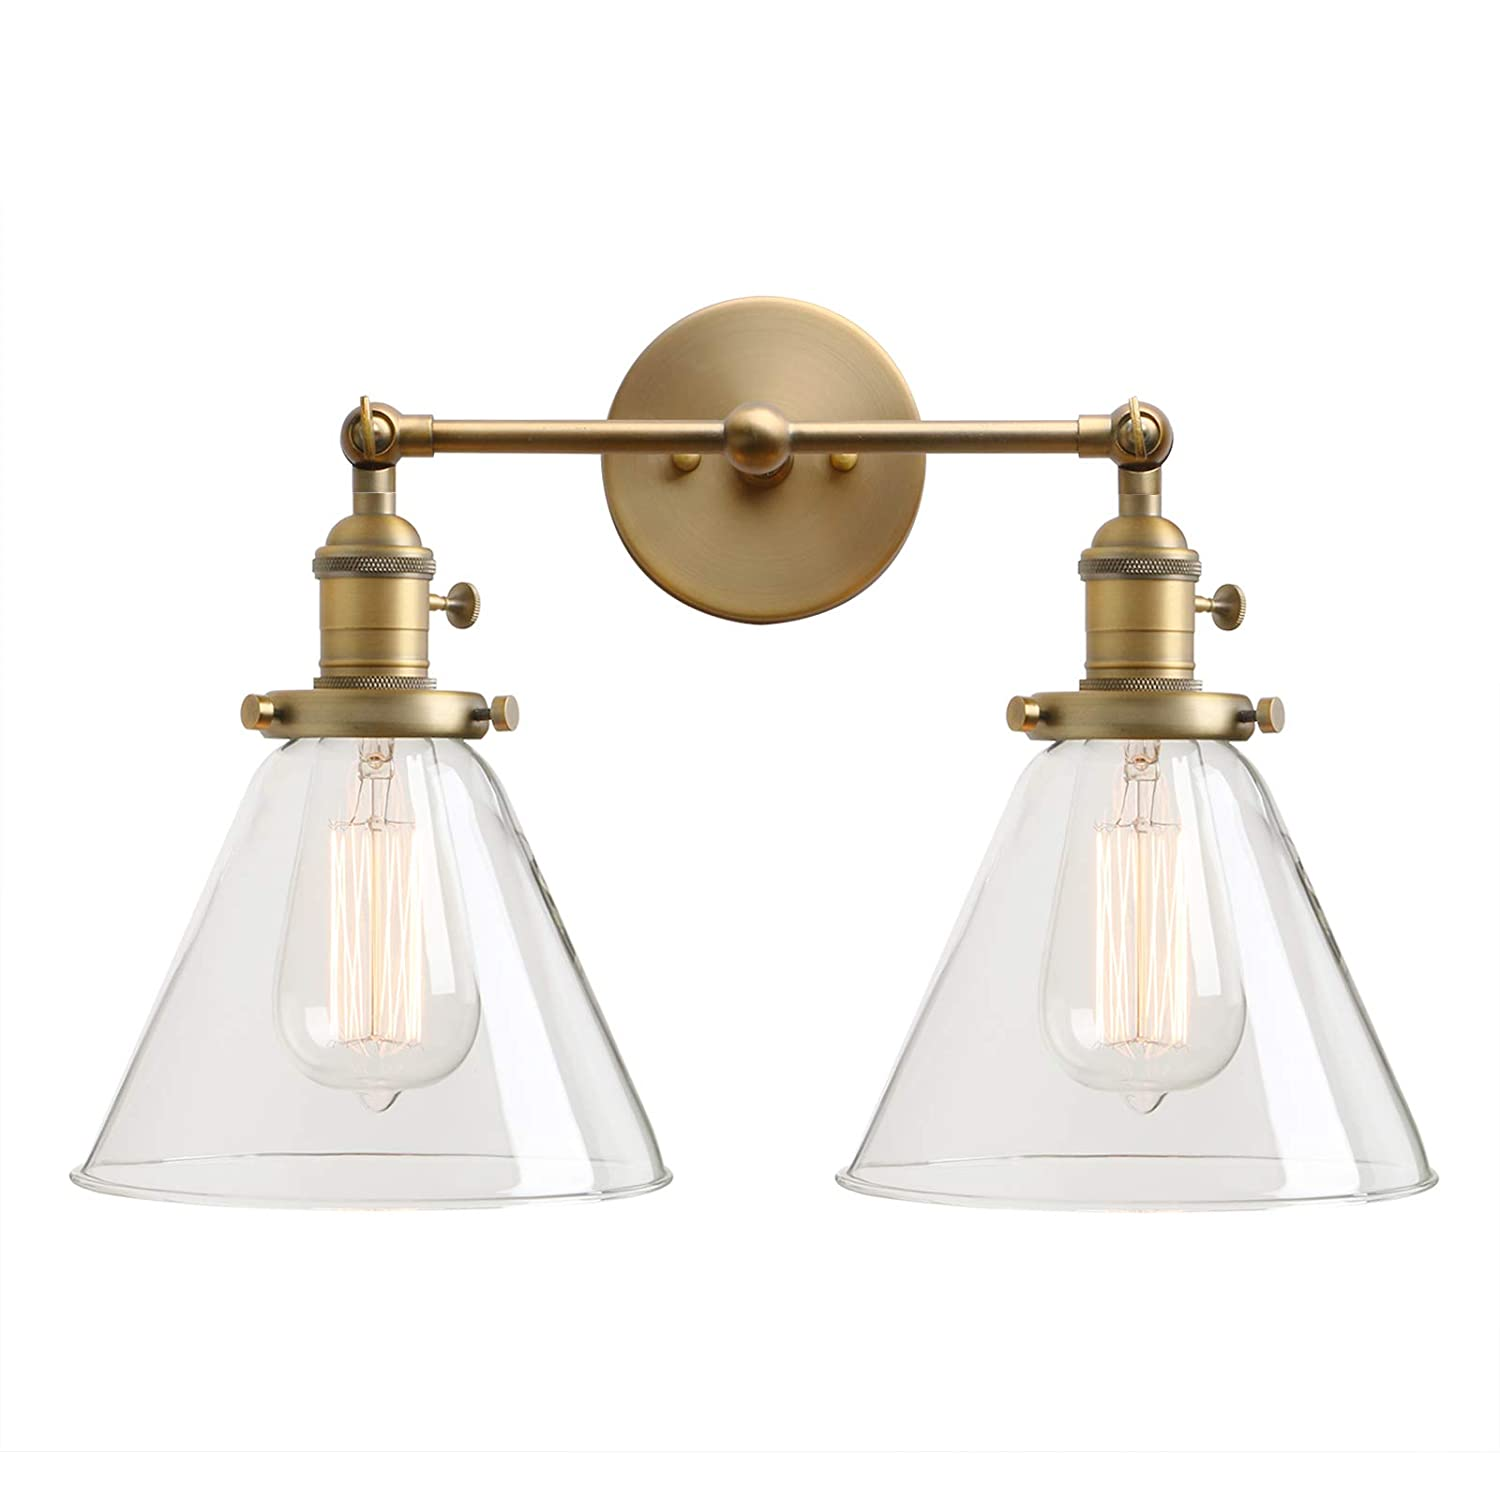 Permo double sconce vintage industrial antique 2 lights wall sconces with funnel flared glass clear glass shade antique